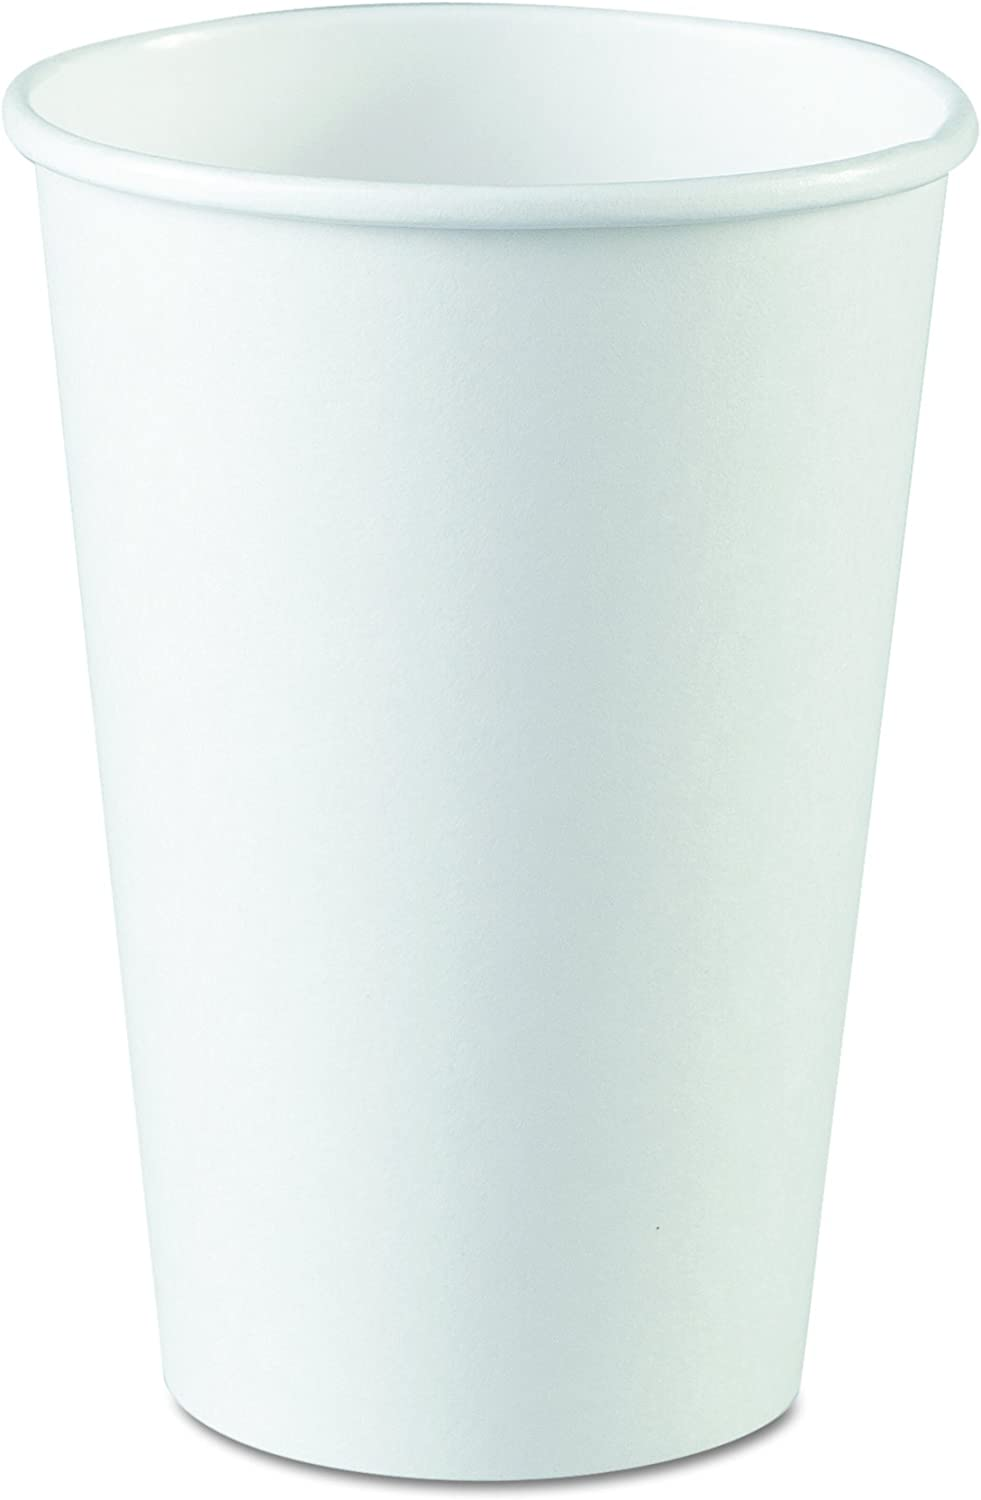 Dixie 16 oz. Paper Hot Coffee Cup by GP PRO (Georgia-Pacific), White, 2346W, 1,000 Count (50 Cups Per Sleeve, 20 Sleeves Per Case)